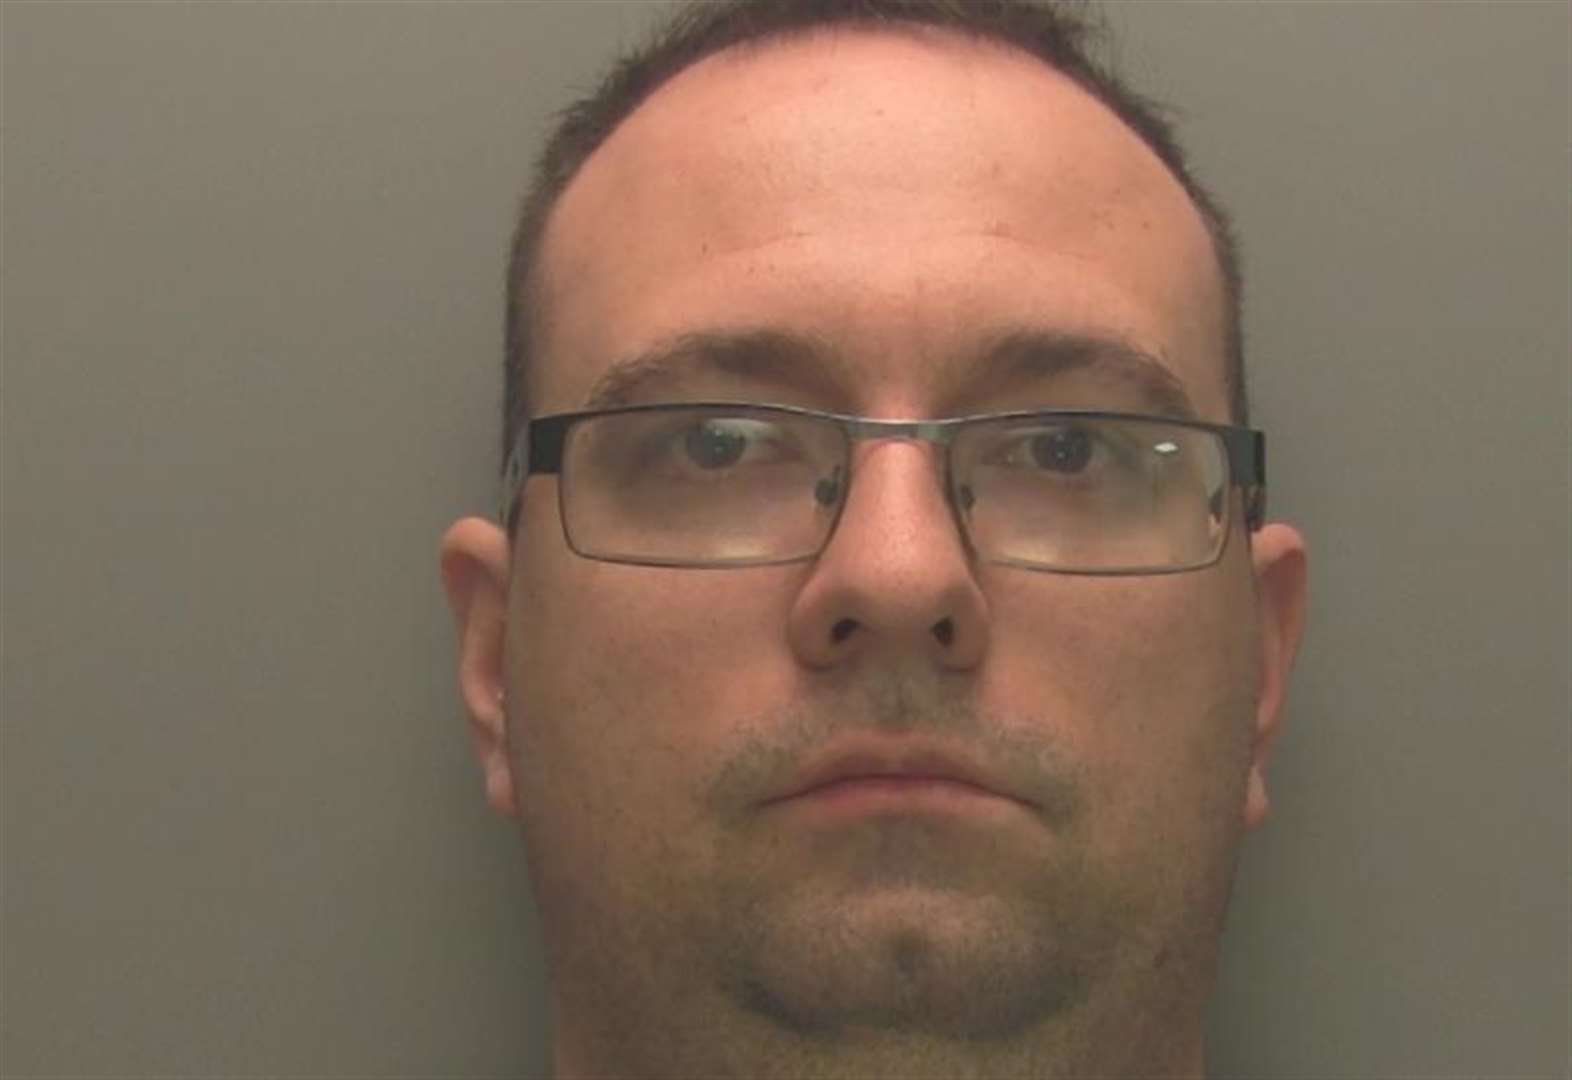 Ex-teaching assistant from Pinchbeck is a 'predator', says NSPCC